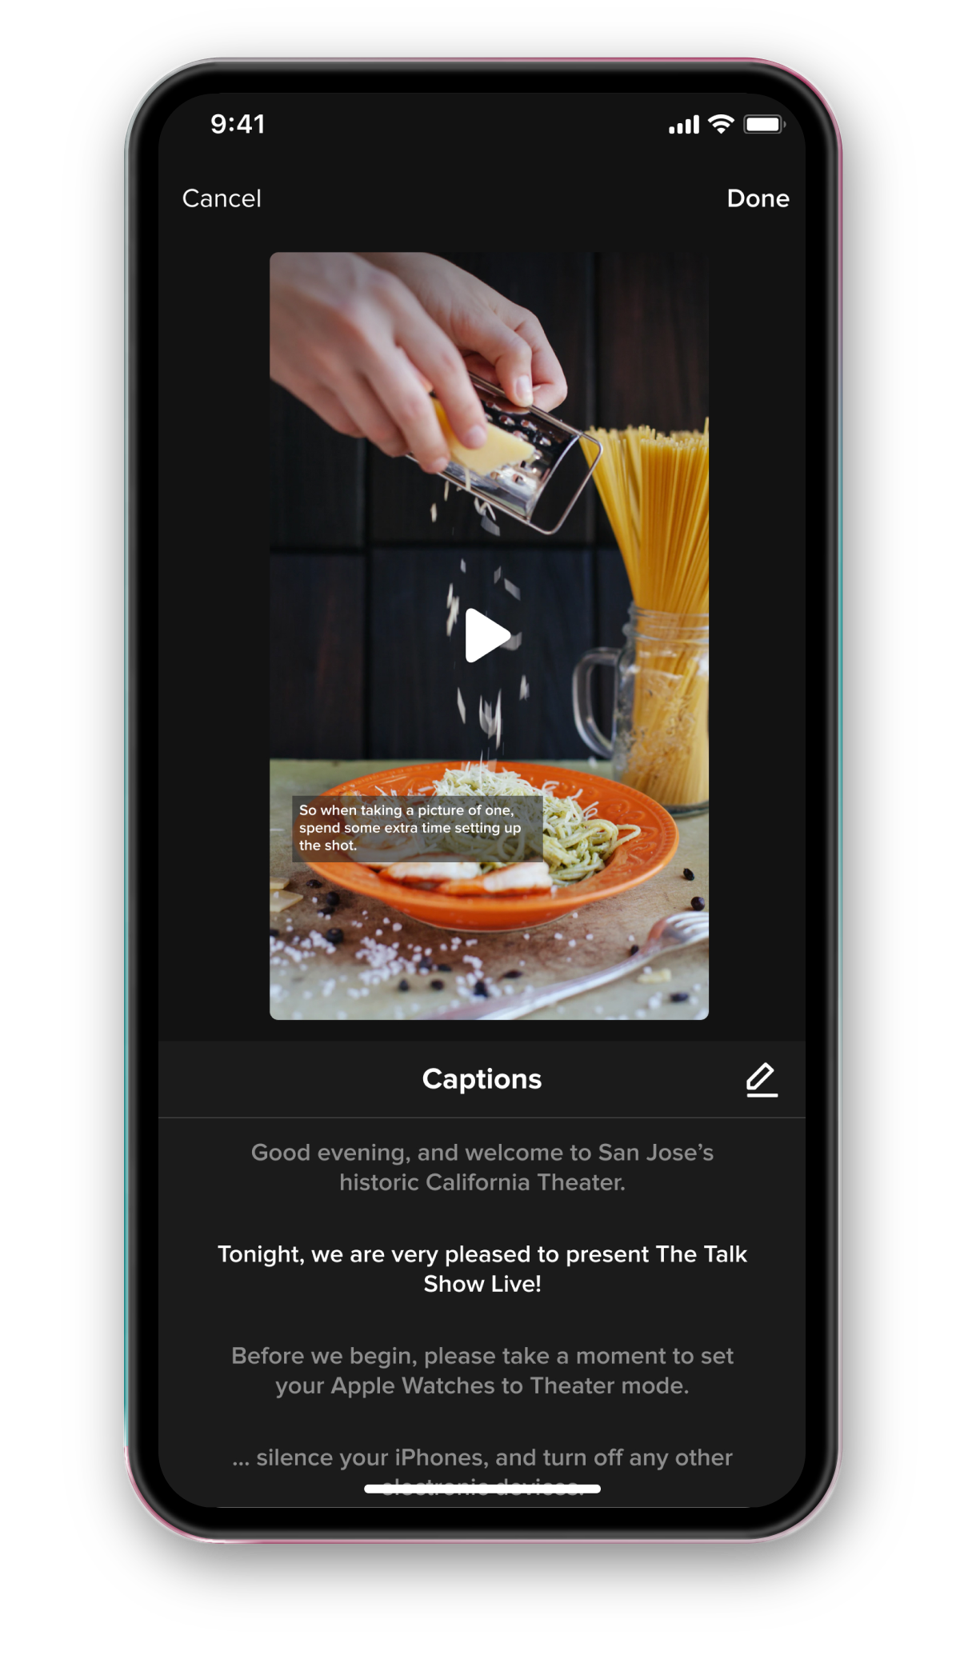 Iphone screenshot of captions preview in the app's editing UI.